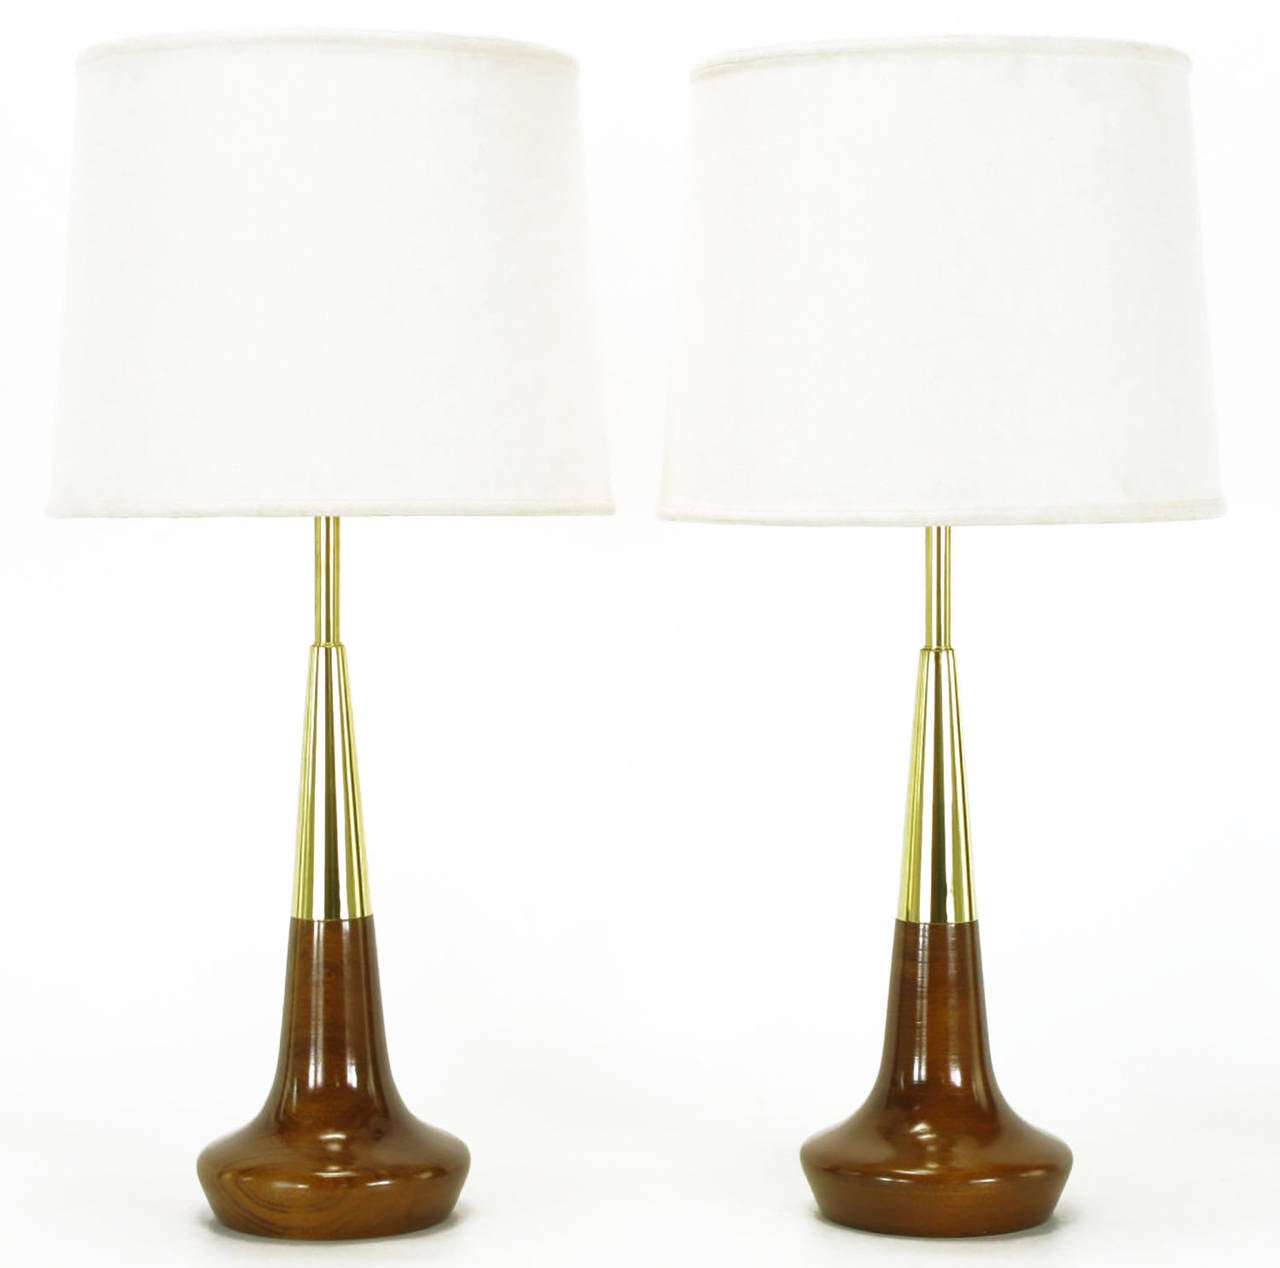 Pair of Lightolier turned solid walnut and brass table lamps. With brass stems, white lacquered metal cups and cast opaque and white glass diffusers. Reportedly a rare and early Gerald Thurston design. Restored and rewired.